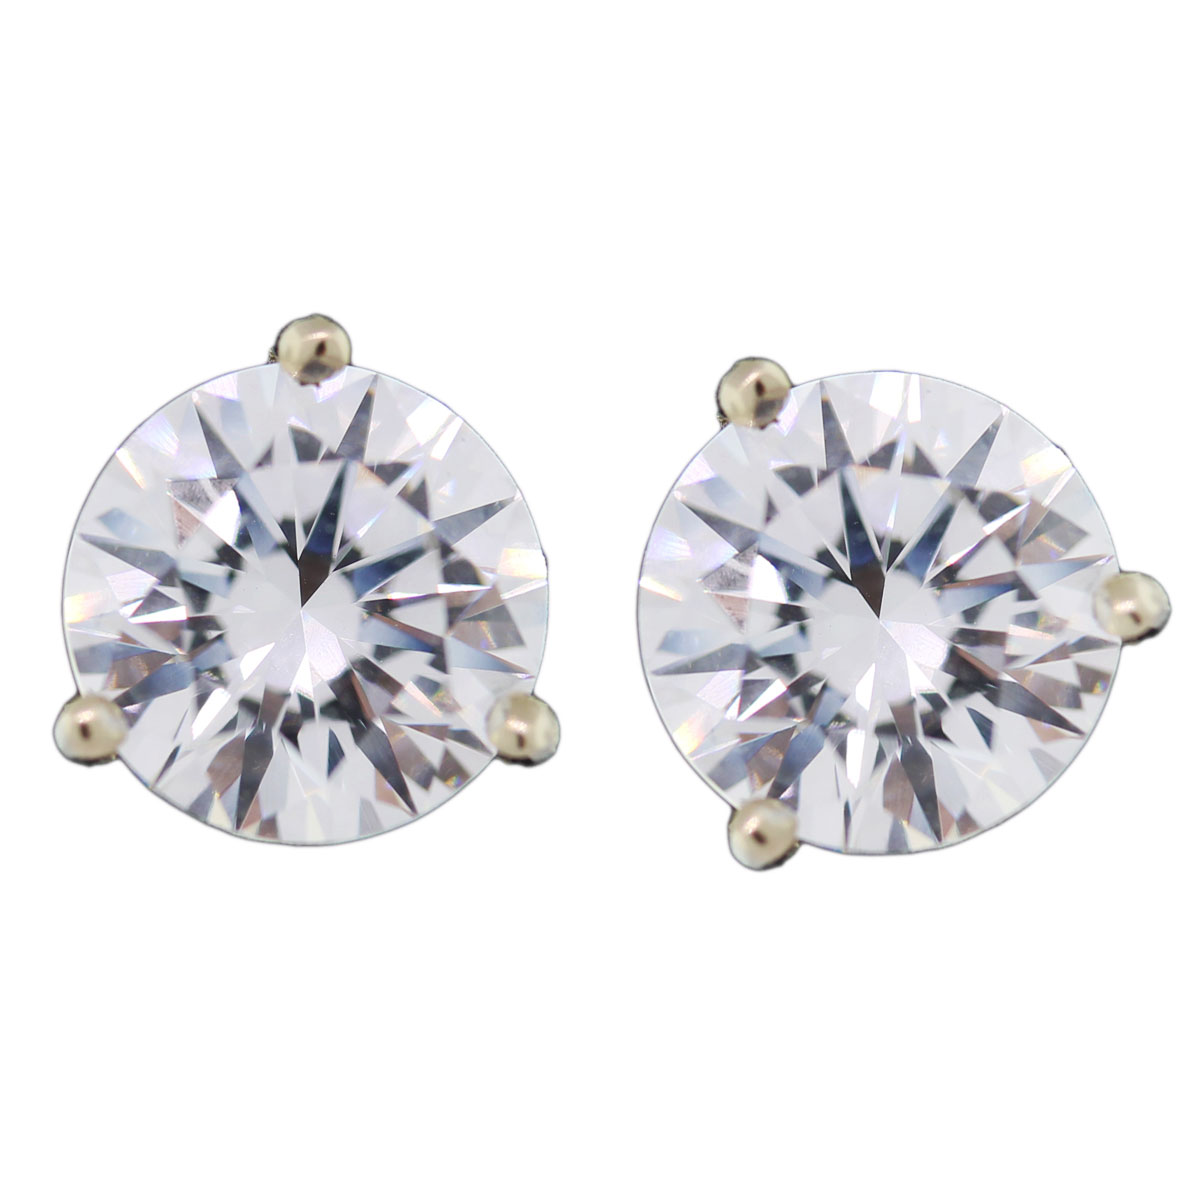 14k White Gold Cubic Zirconia 8mm Stud Earrings